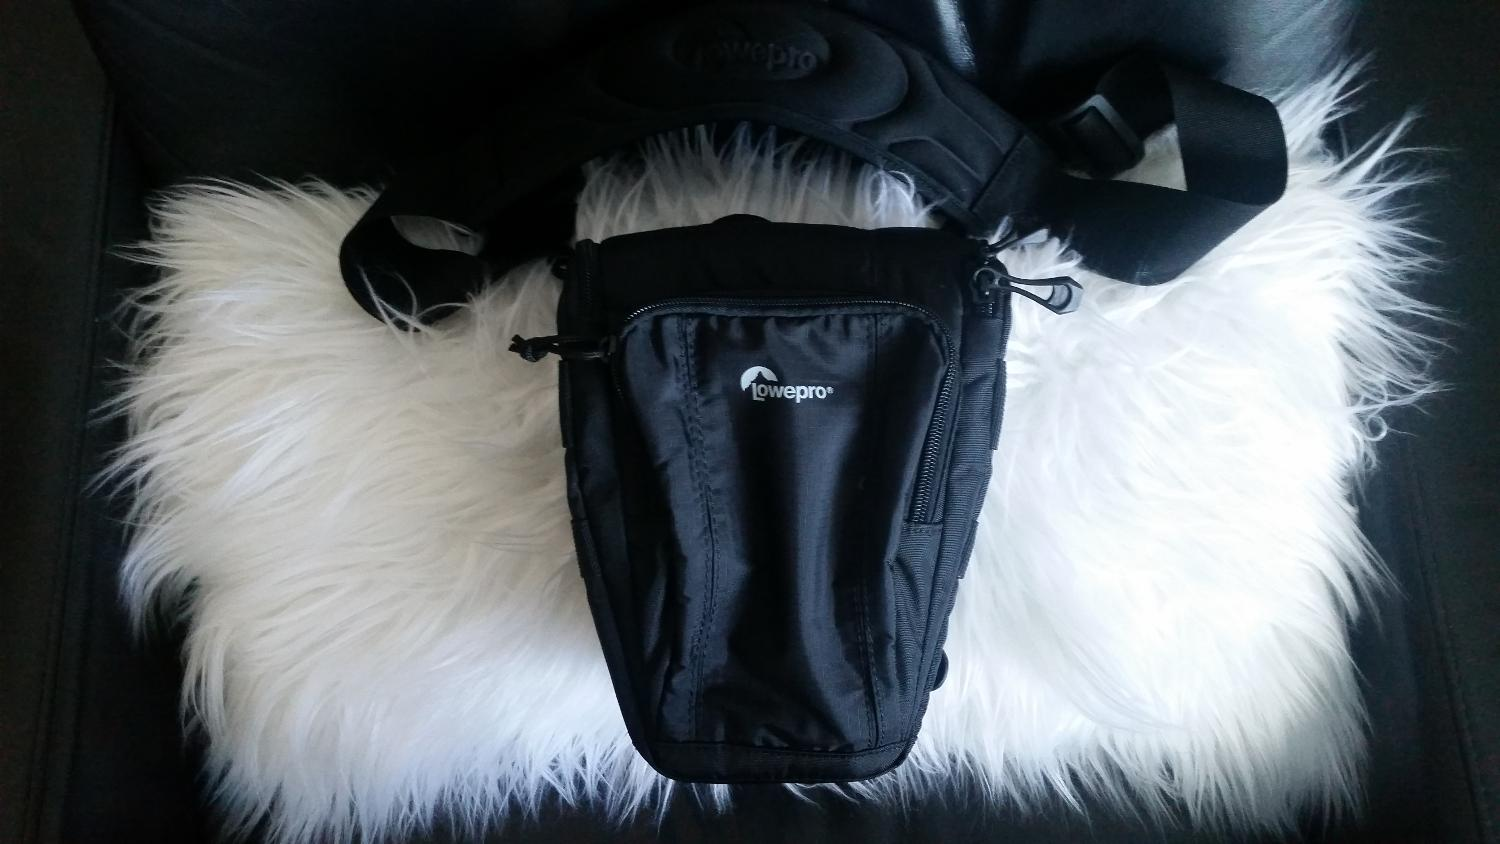 Best Lower Toploader Zoom 50 Aw Ll Black For Sale In Victoria Lowepro Ii Blue British Columbia 2018